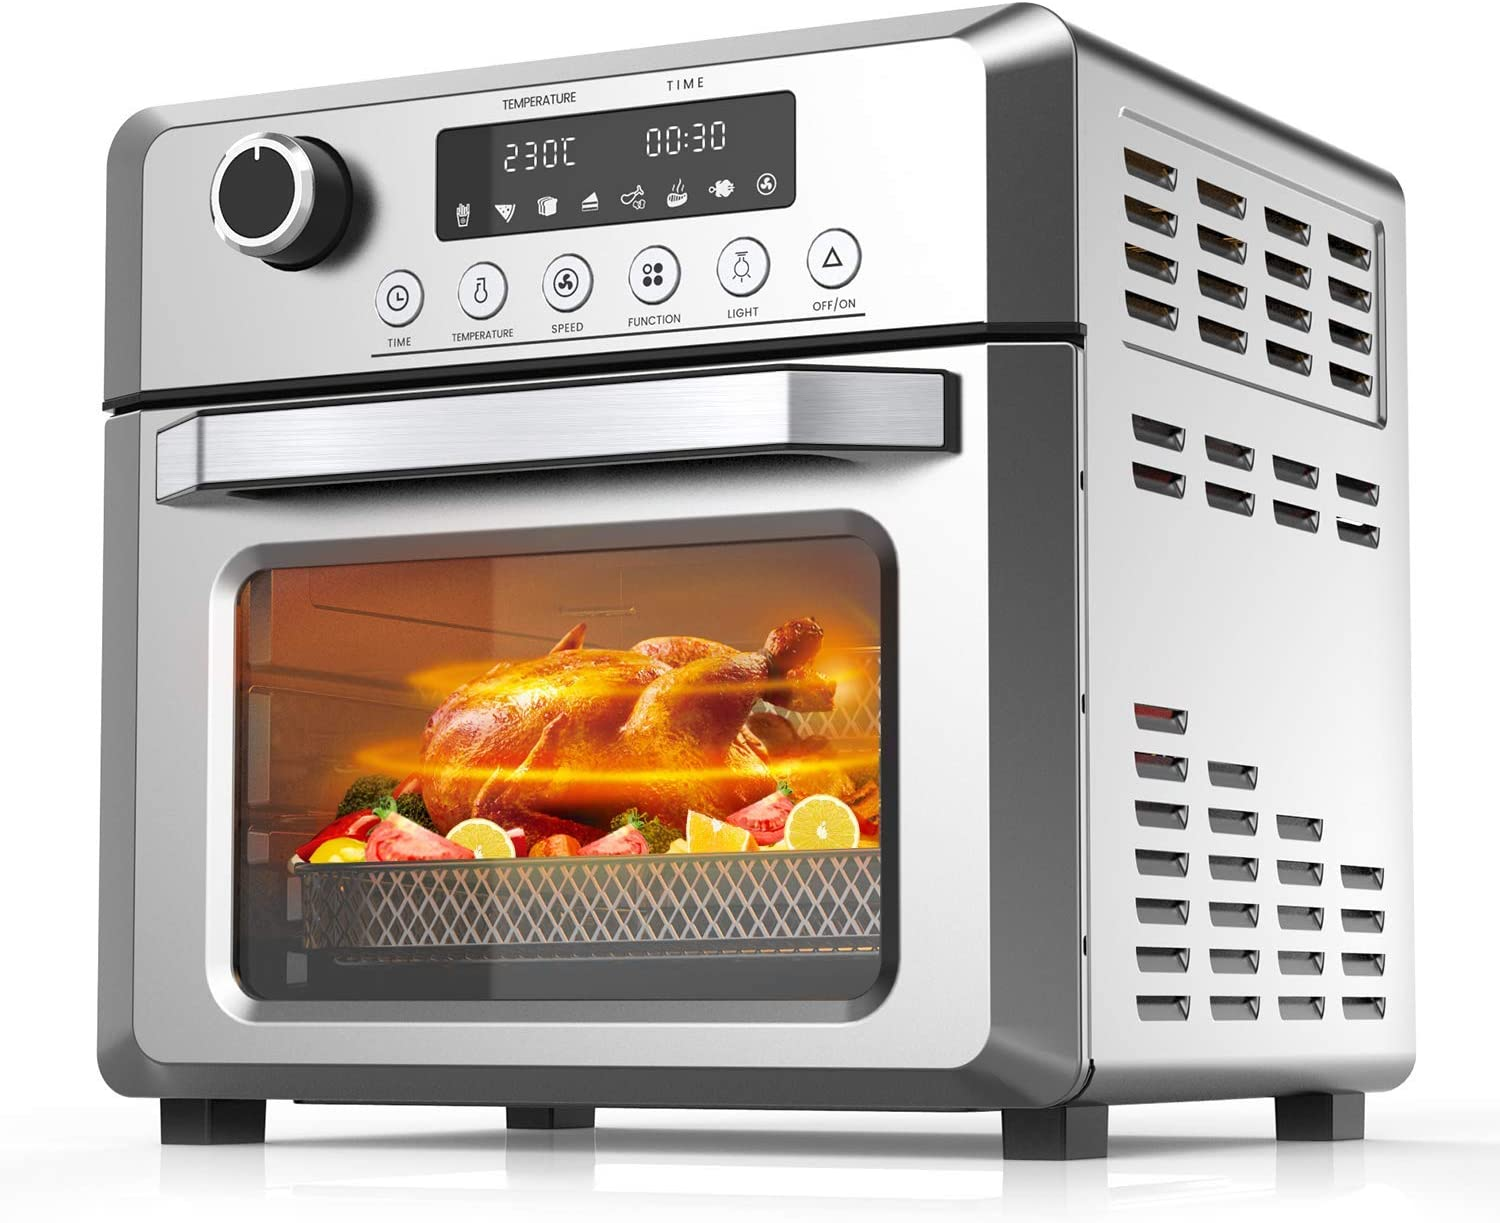 KBS 1500W Toaster Oven Air Fryer Combo, 7-in-1 Convection Oven with Air Fry, Bake, Broil, Toast, Dehydrate, Pizza, Warm Function, 19Qt Countertop Oven with Timer, Temperature Control, 6 Accessories